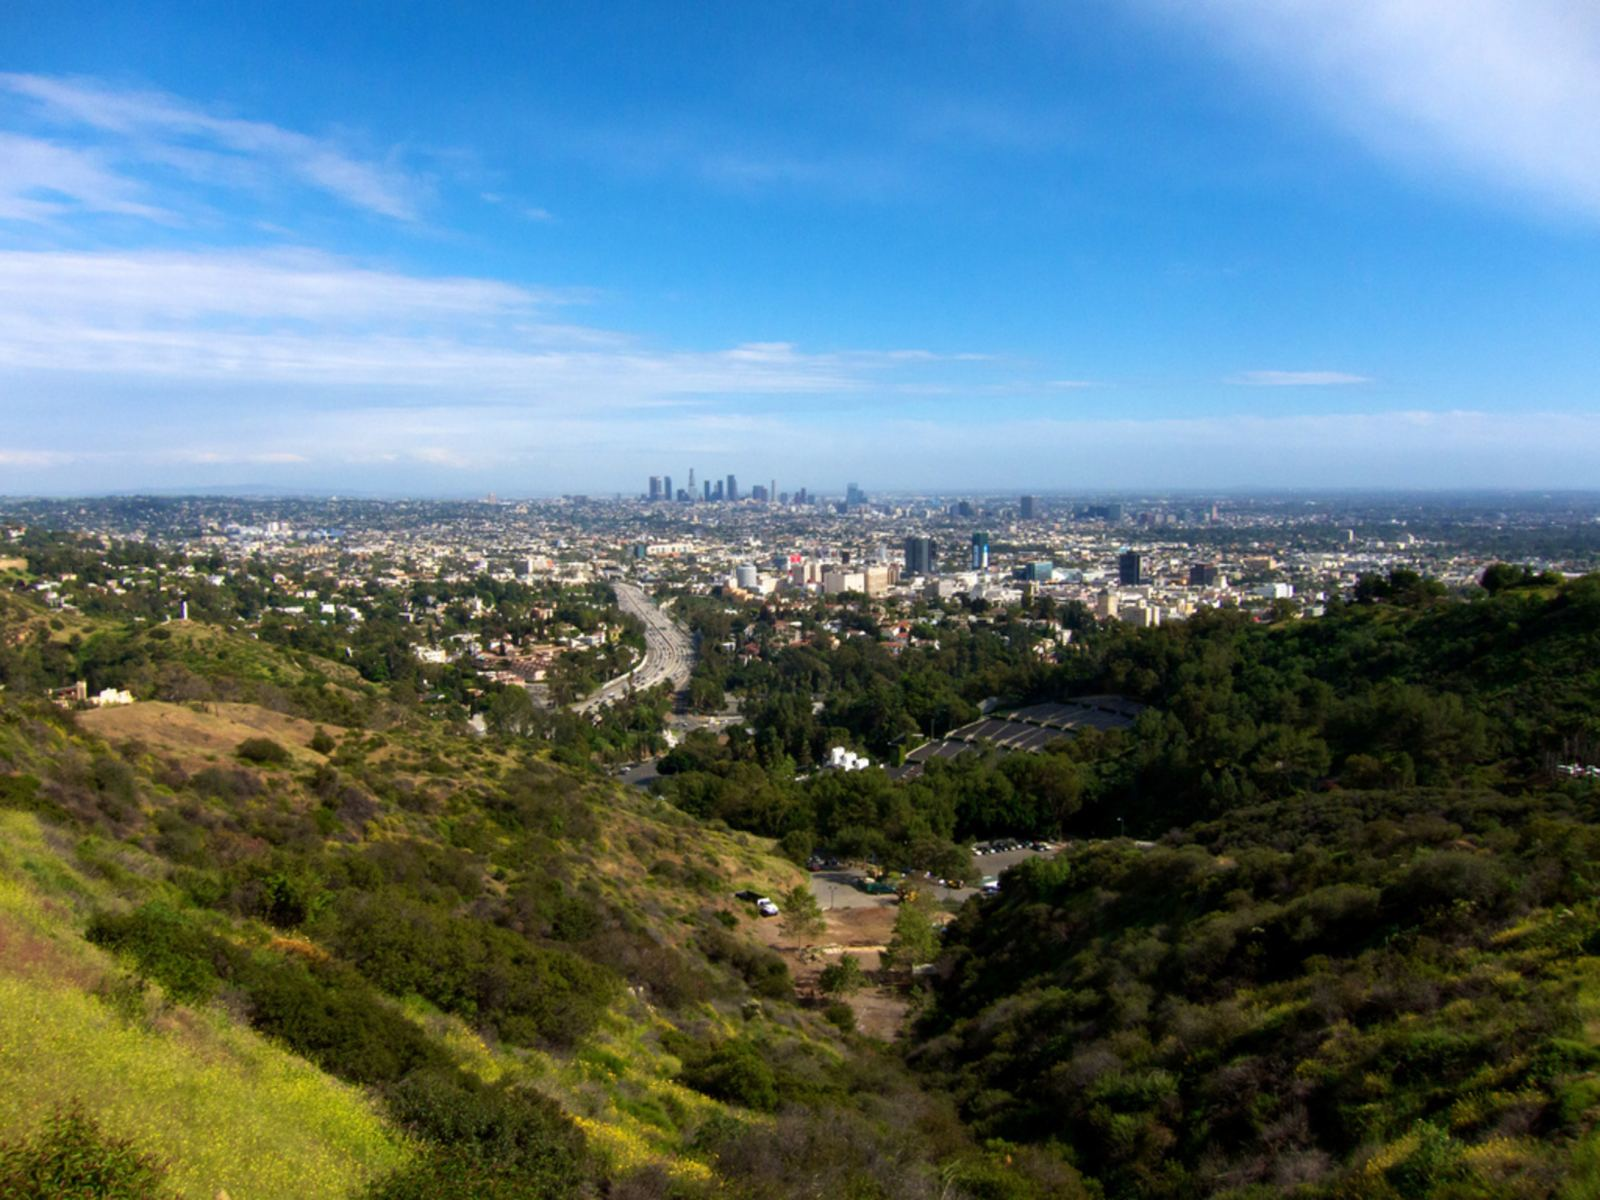 Hollywood Bowl Scenic Overlook